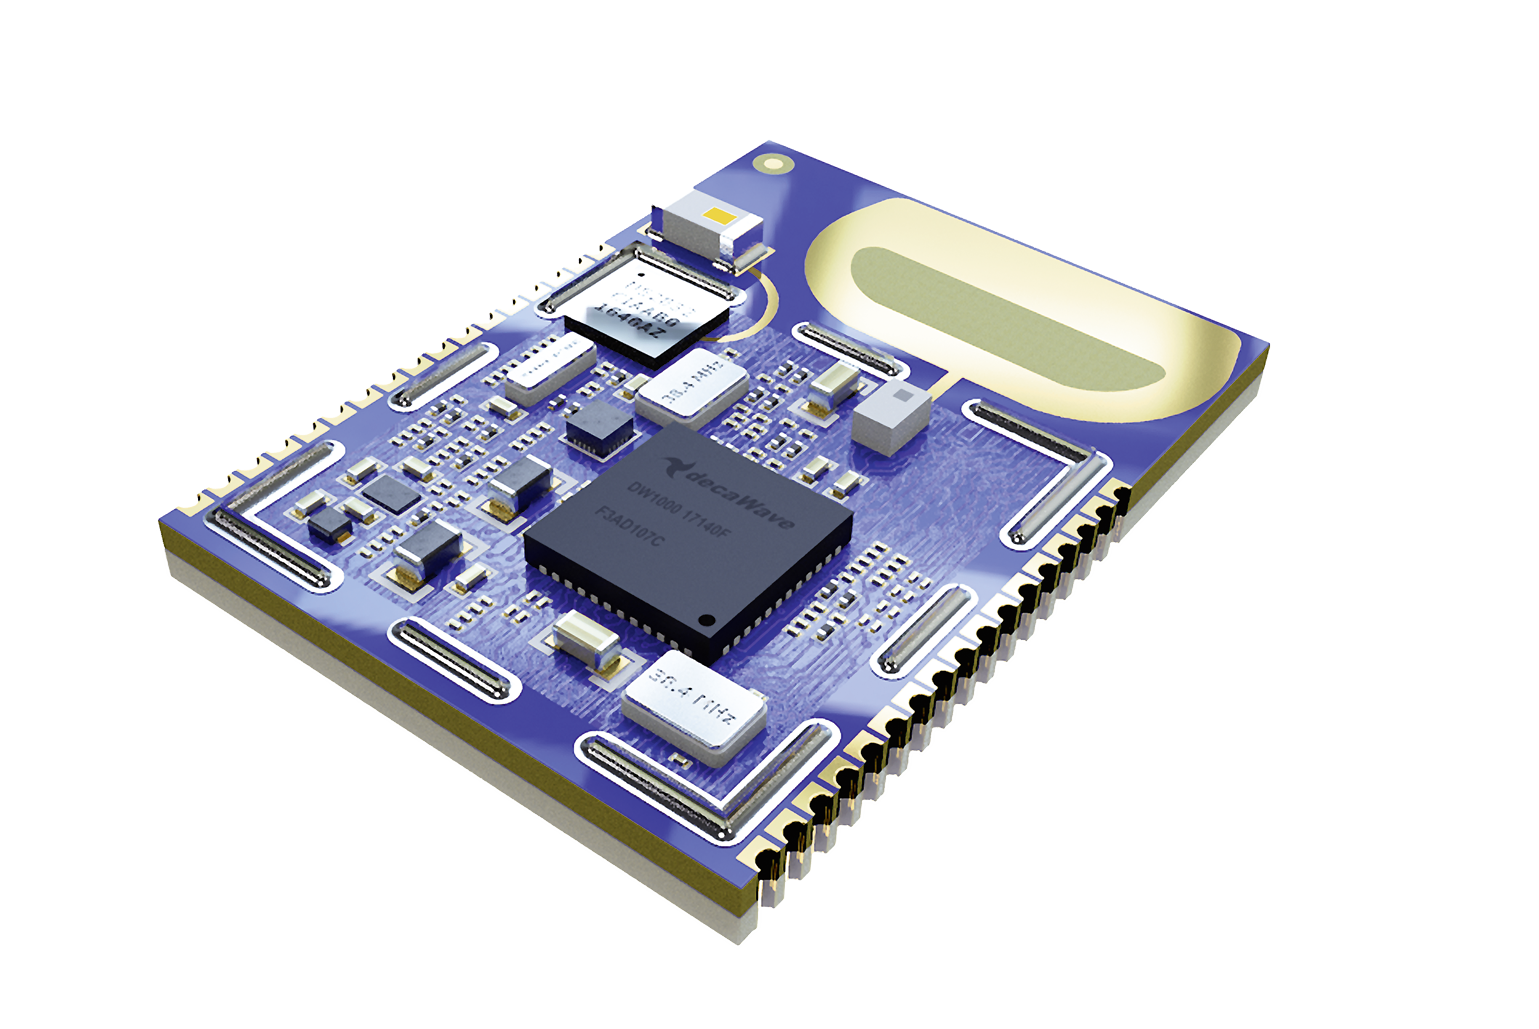 UWB/Bluetooth Low Energy module supports out-of-the-box